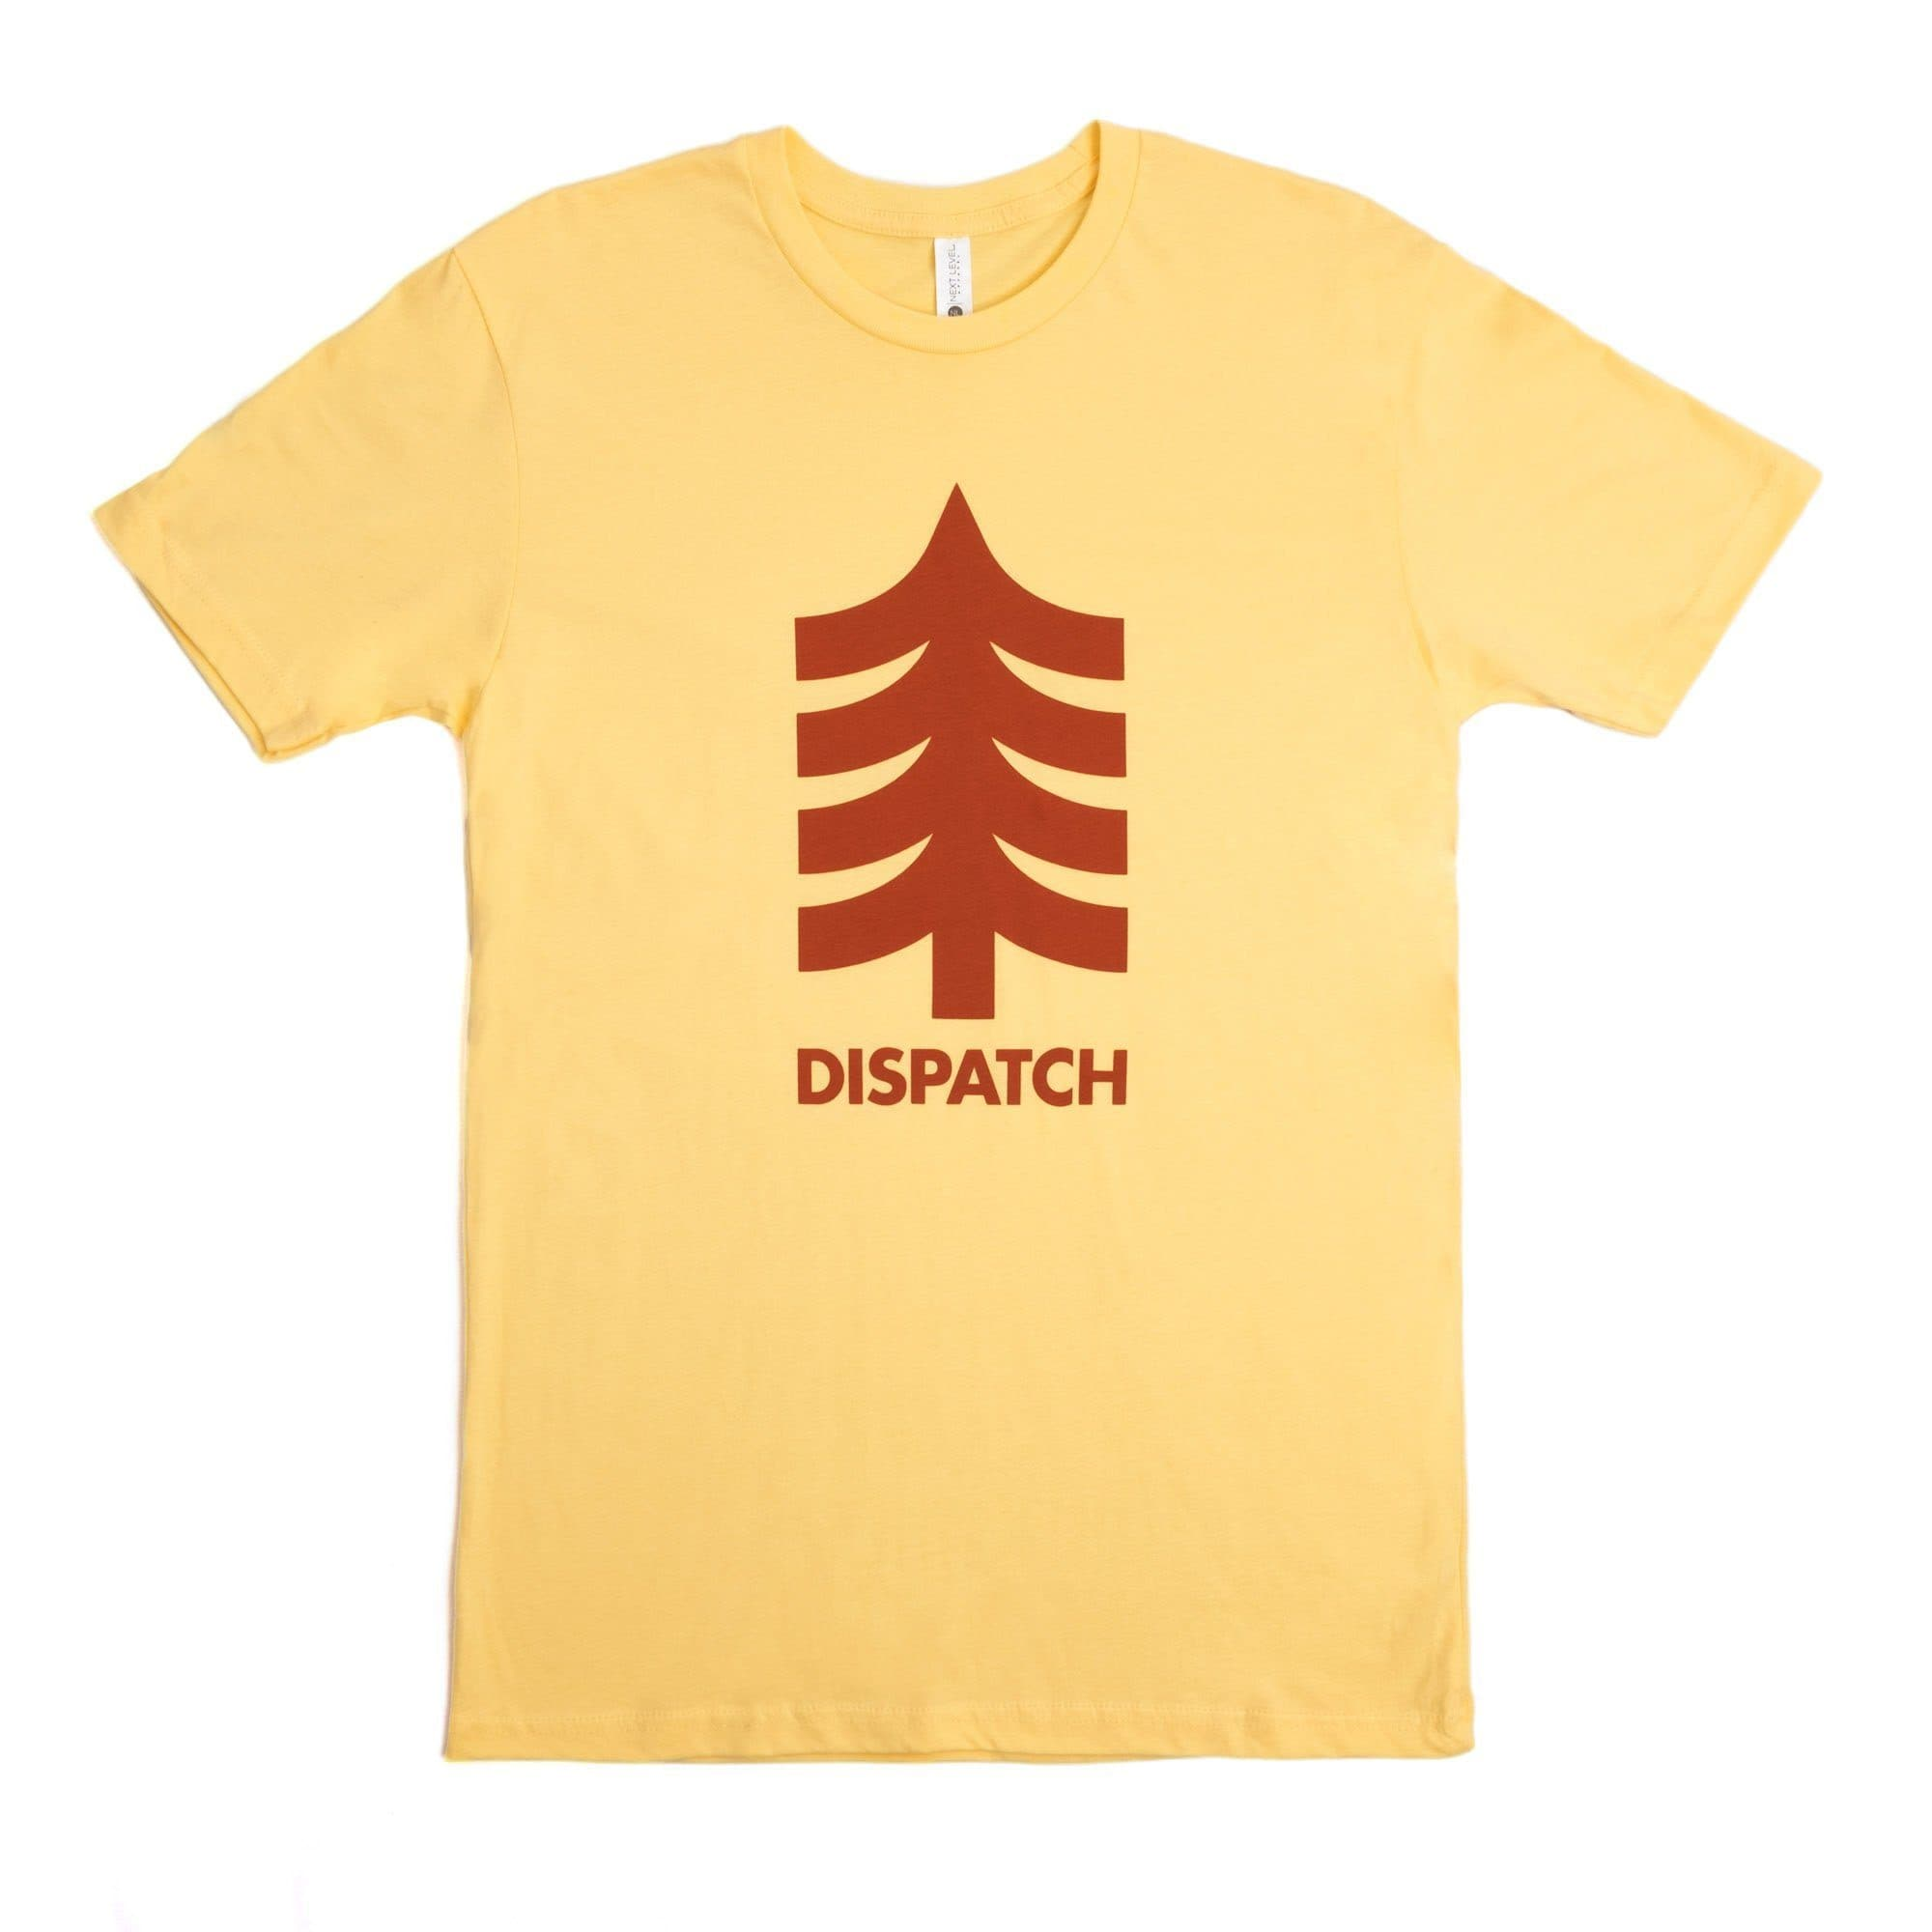 'Tree' T-Shirt - Yellow